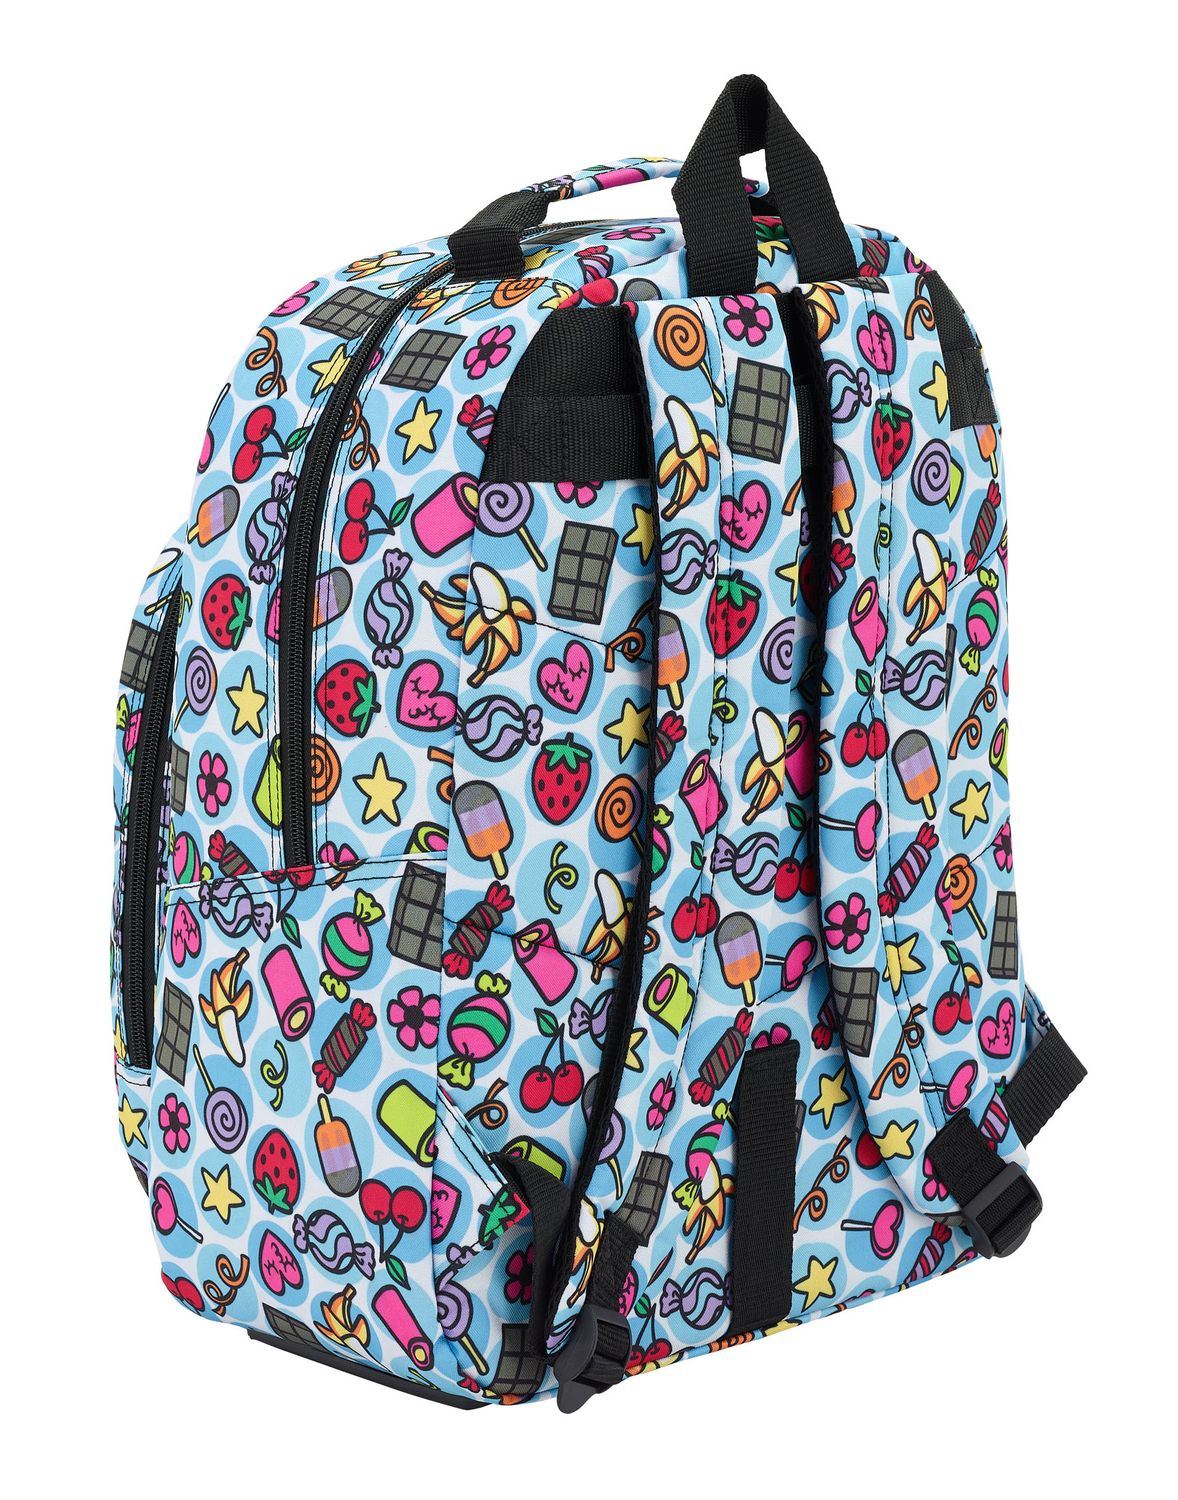 Blackfit Sweet Backpack 42cm – image 2